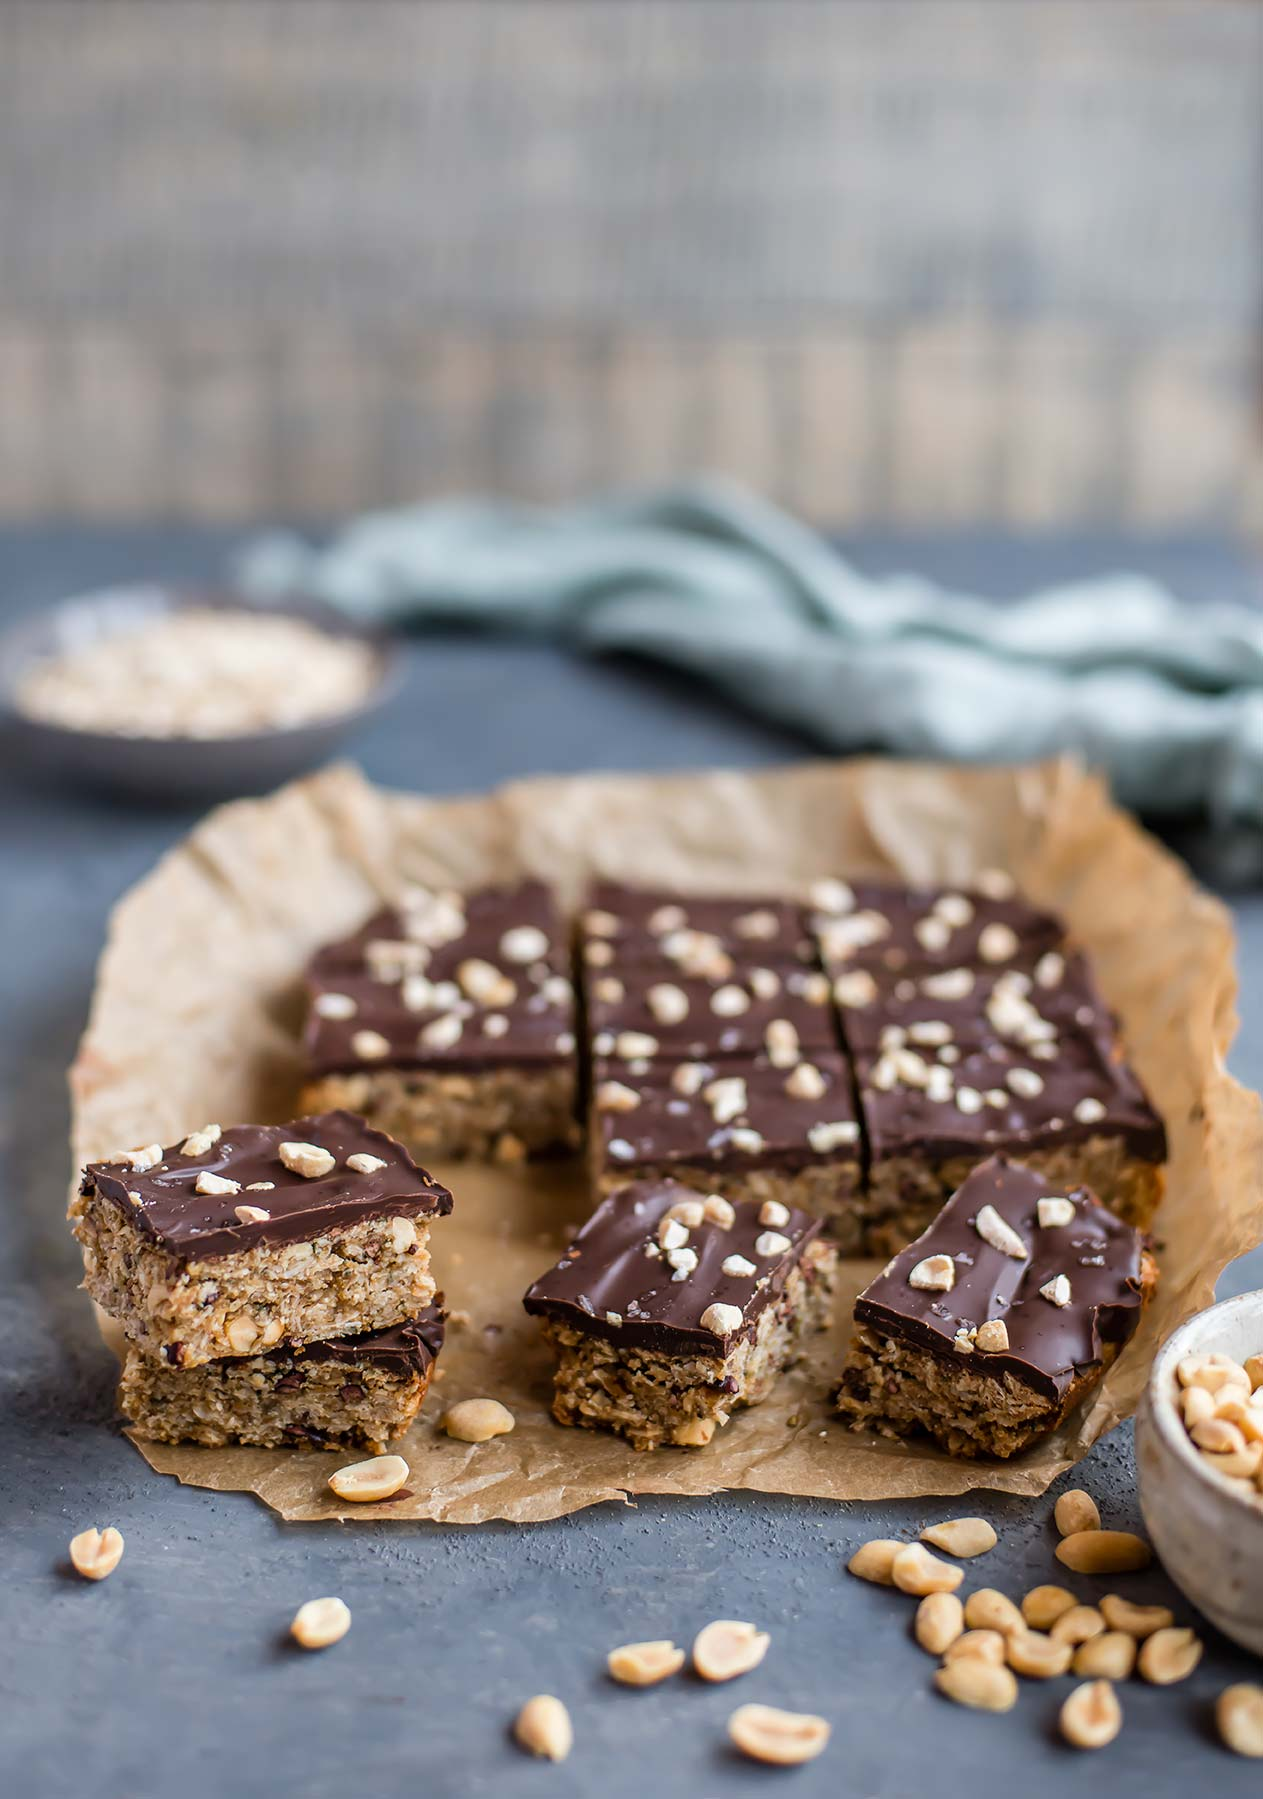 Peanut Butter Chocolate Oatmeal Bars with Hemp & Cacao Nibs